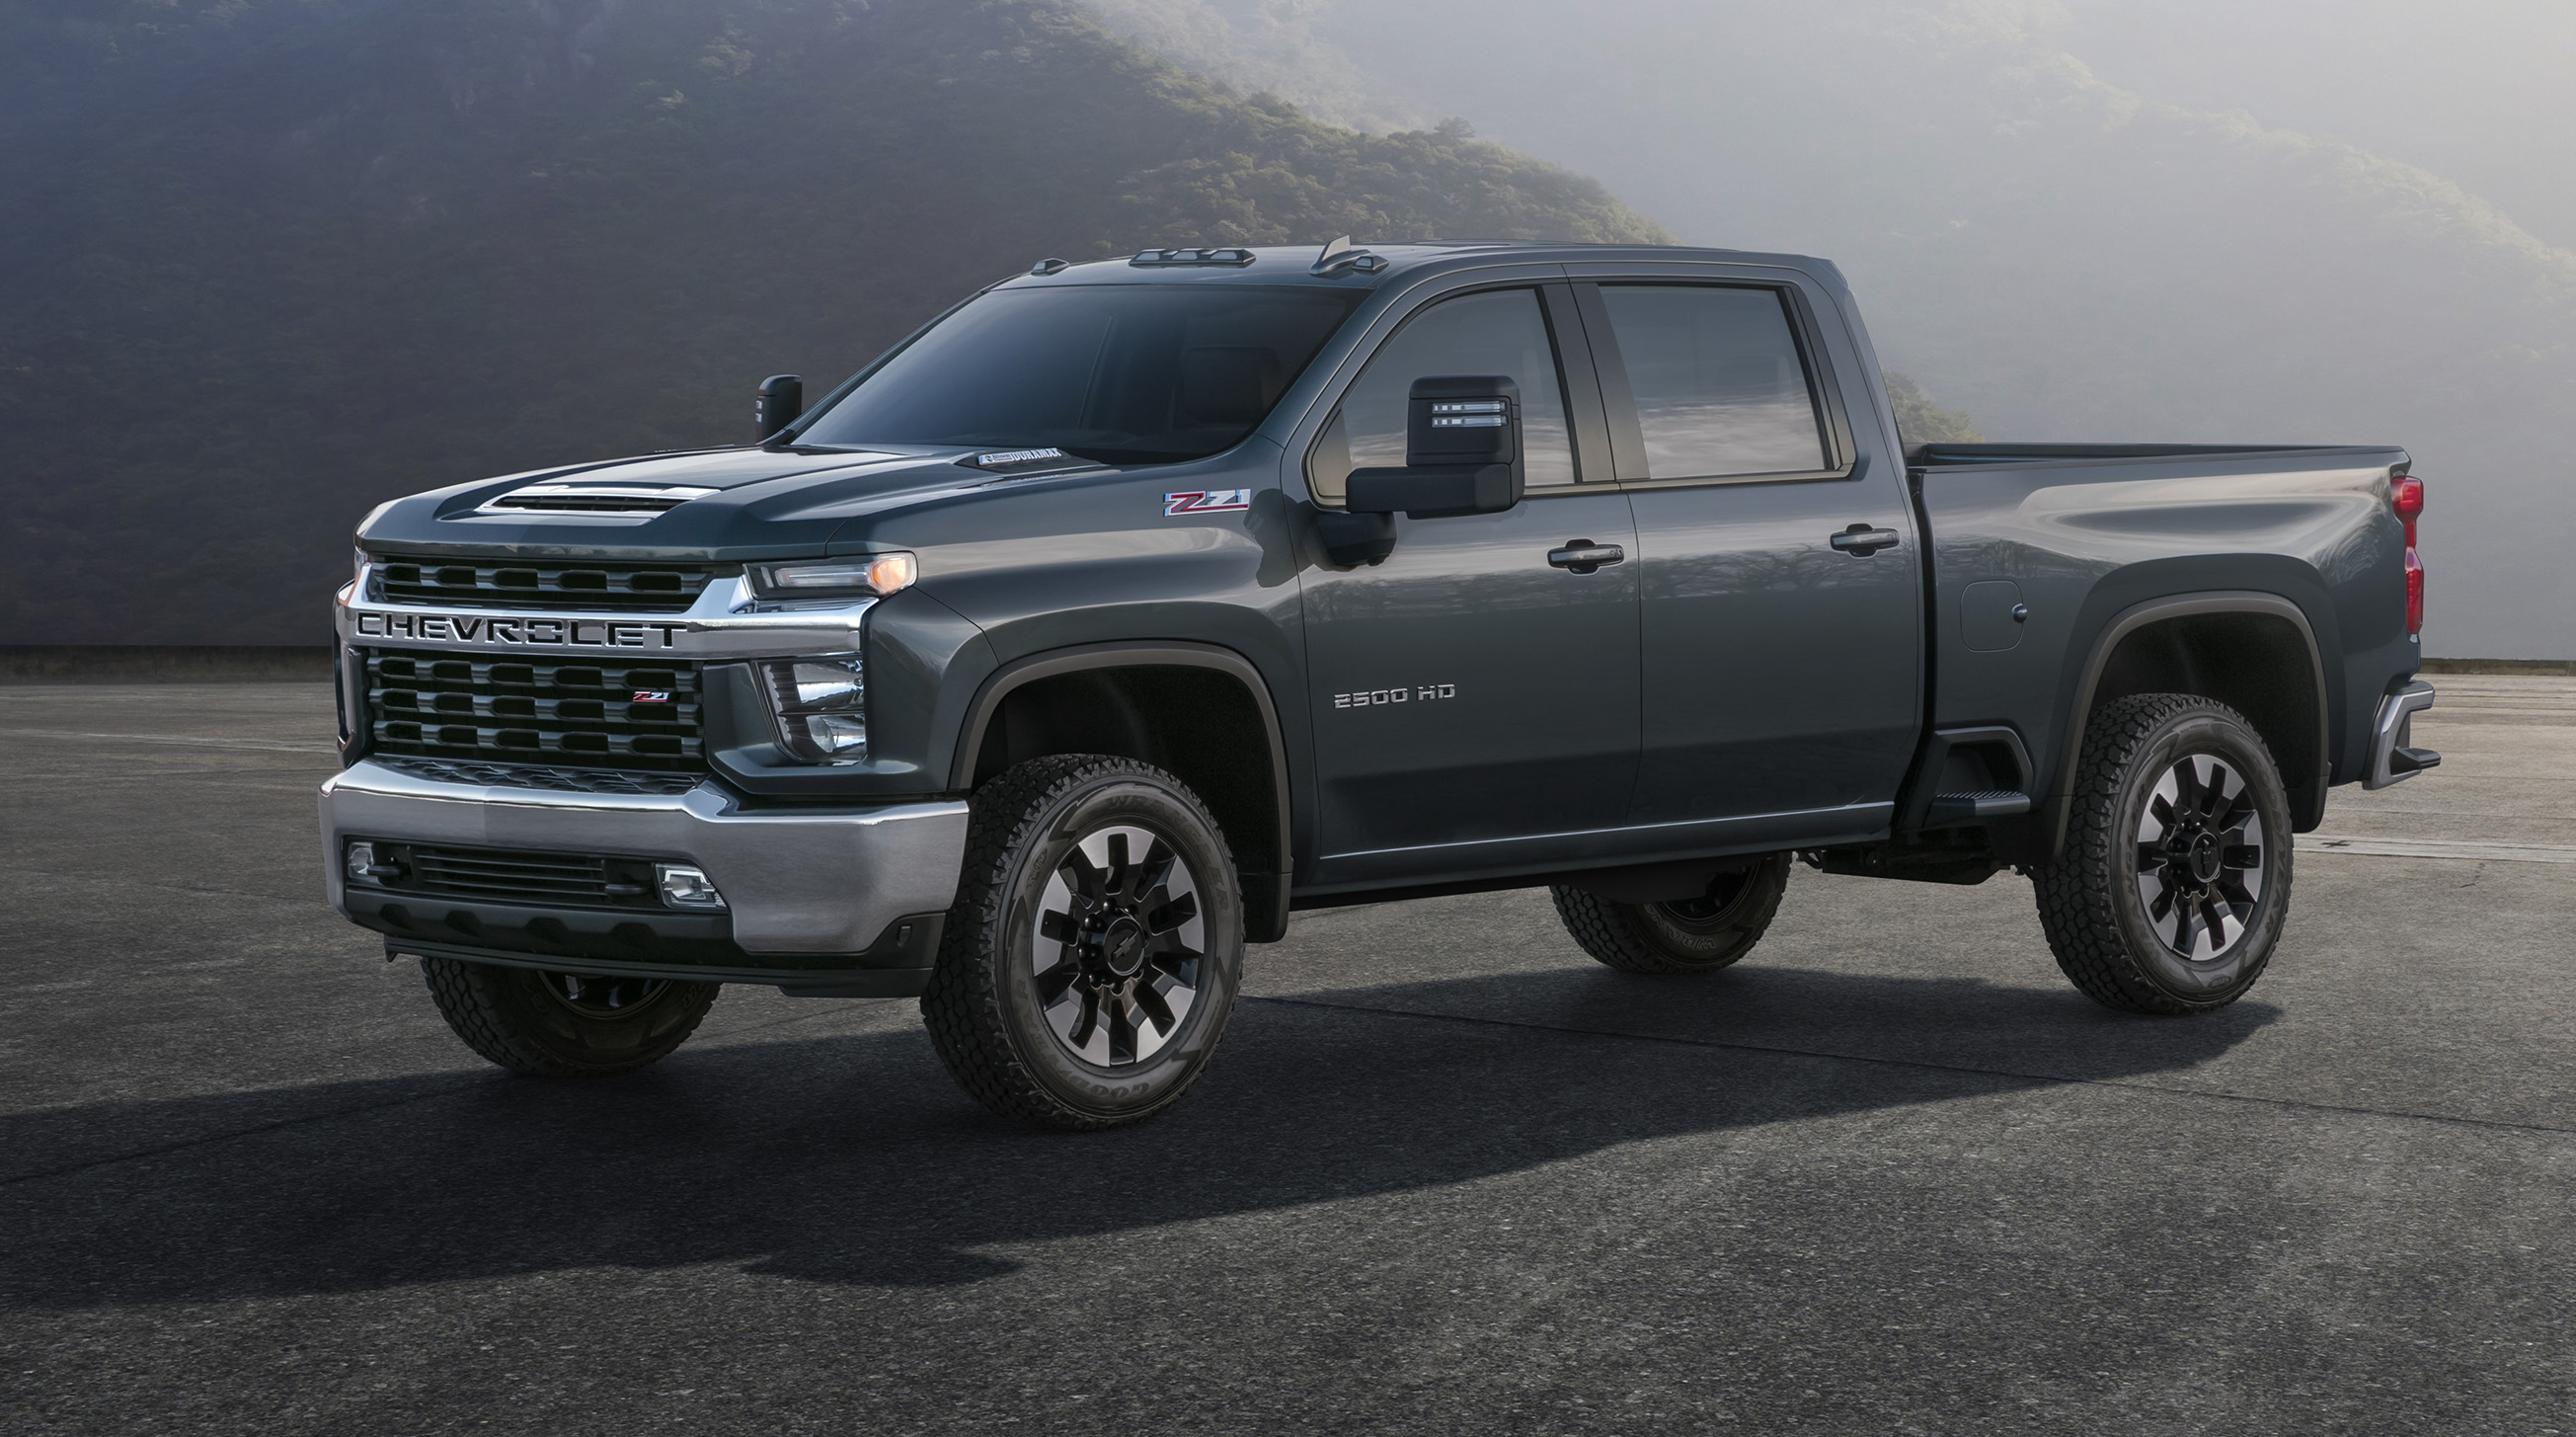 Most Capable Most Advanced Silverado Heavy Duty Ever To Debut In